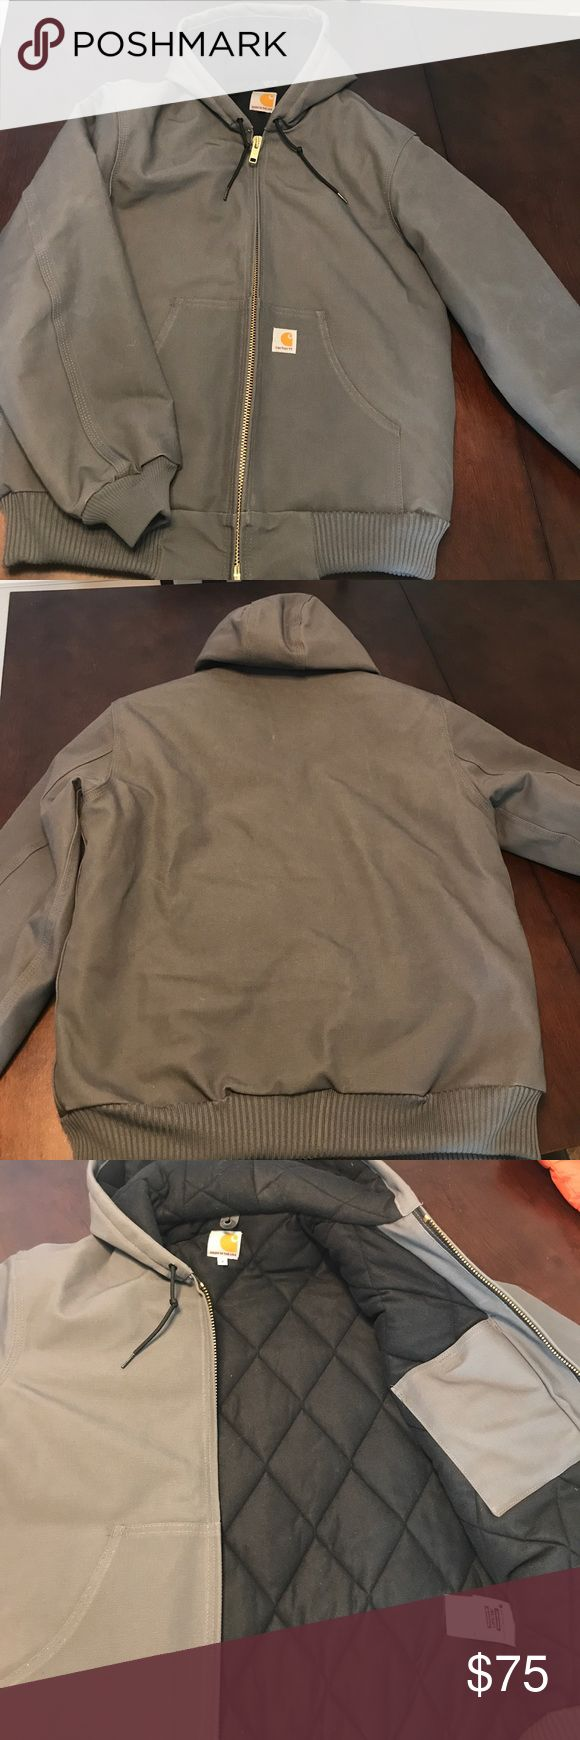 NWOT Carhartt Hooded Full Zip Jacket NWOT gray hooded jacket for sale. Full zip front with 2 outside pocket and one inside pocket. Carhartt Jackets & Coats Performance Jackets